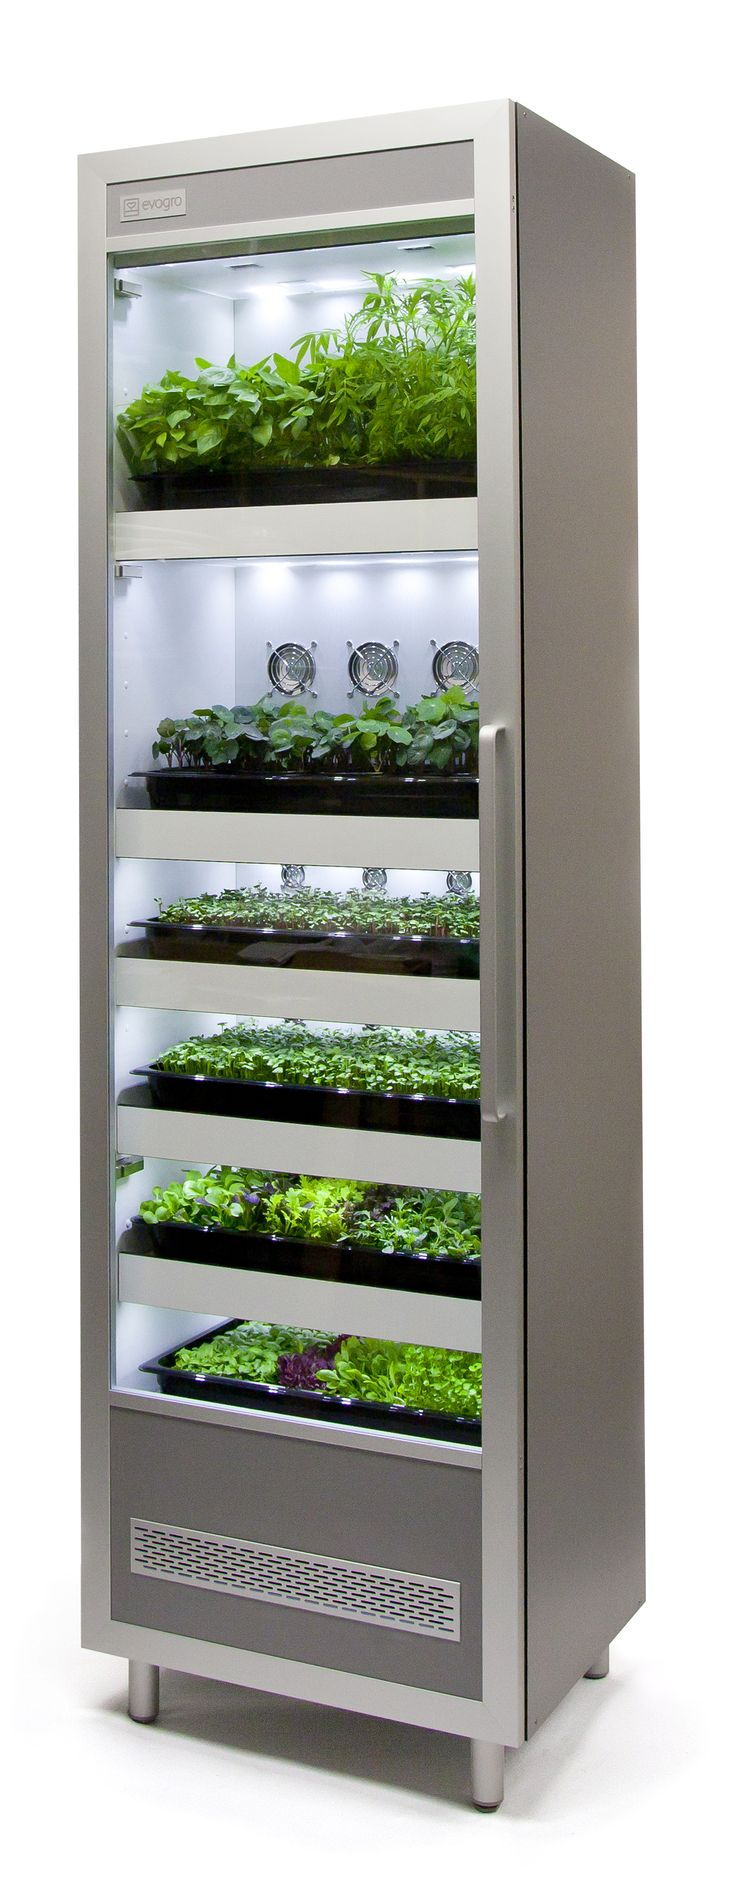 397 best images about garden indoor on pinterest for Indoor gardening machine